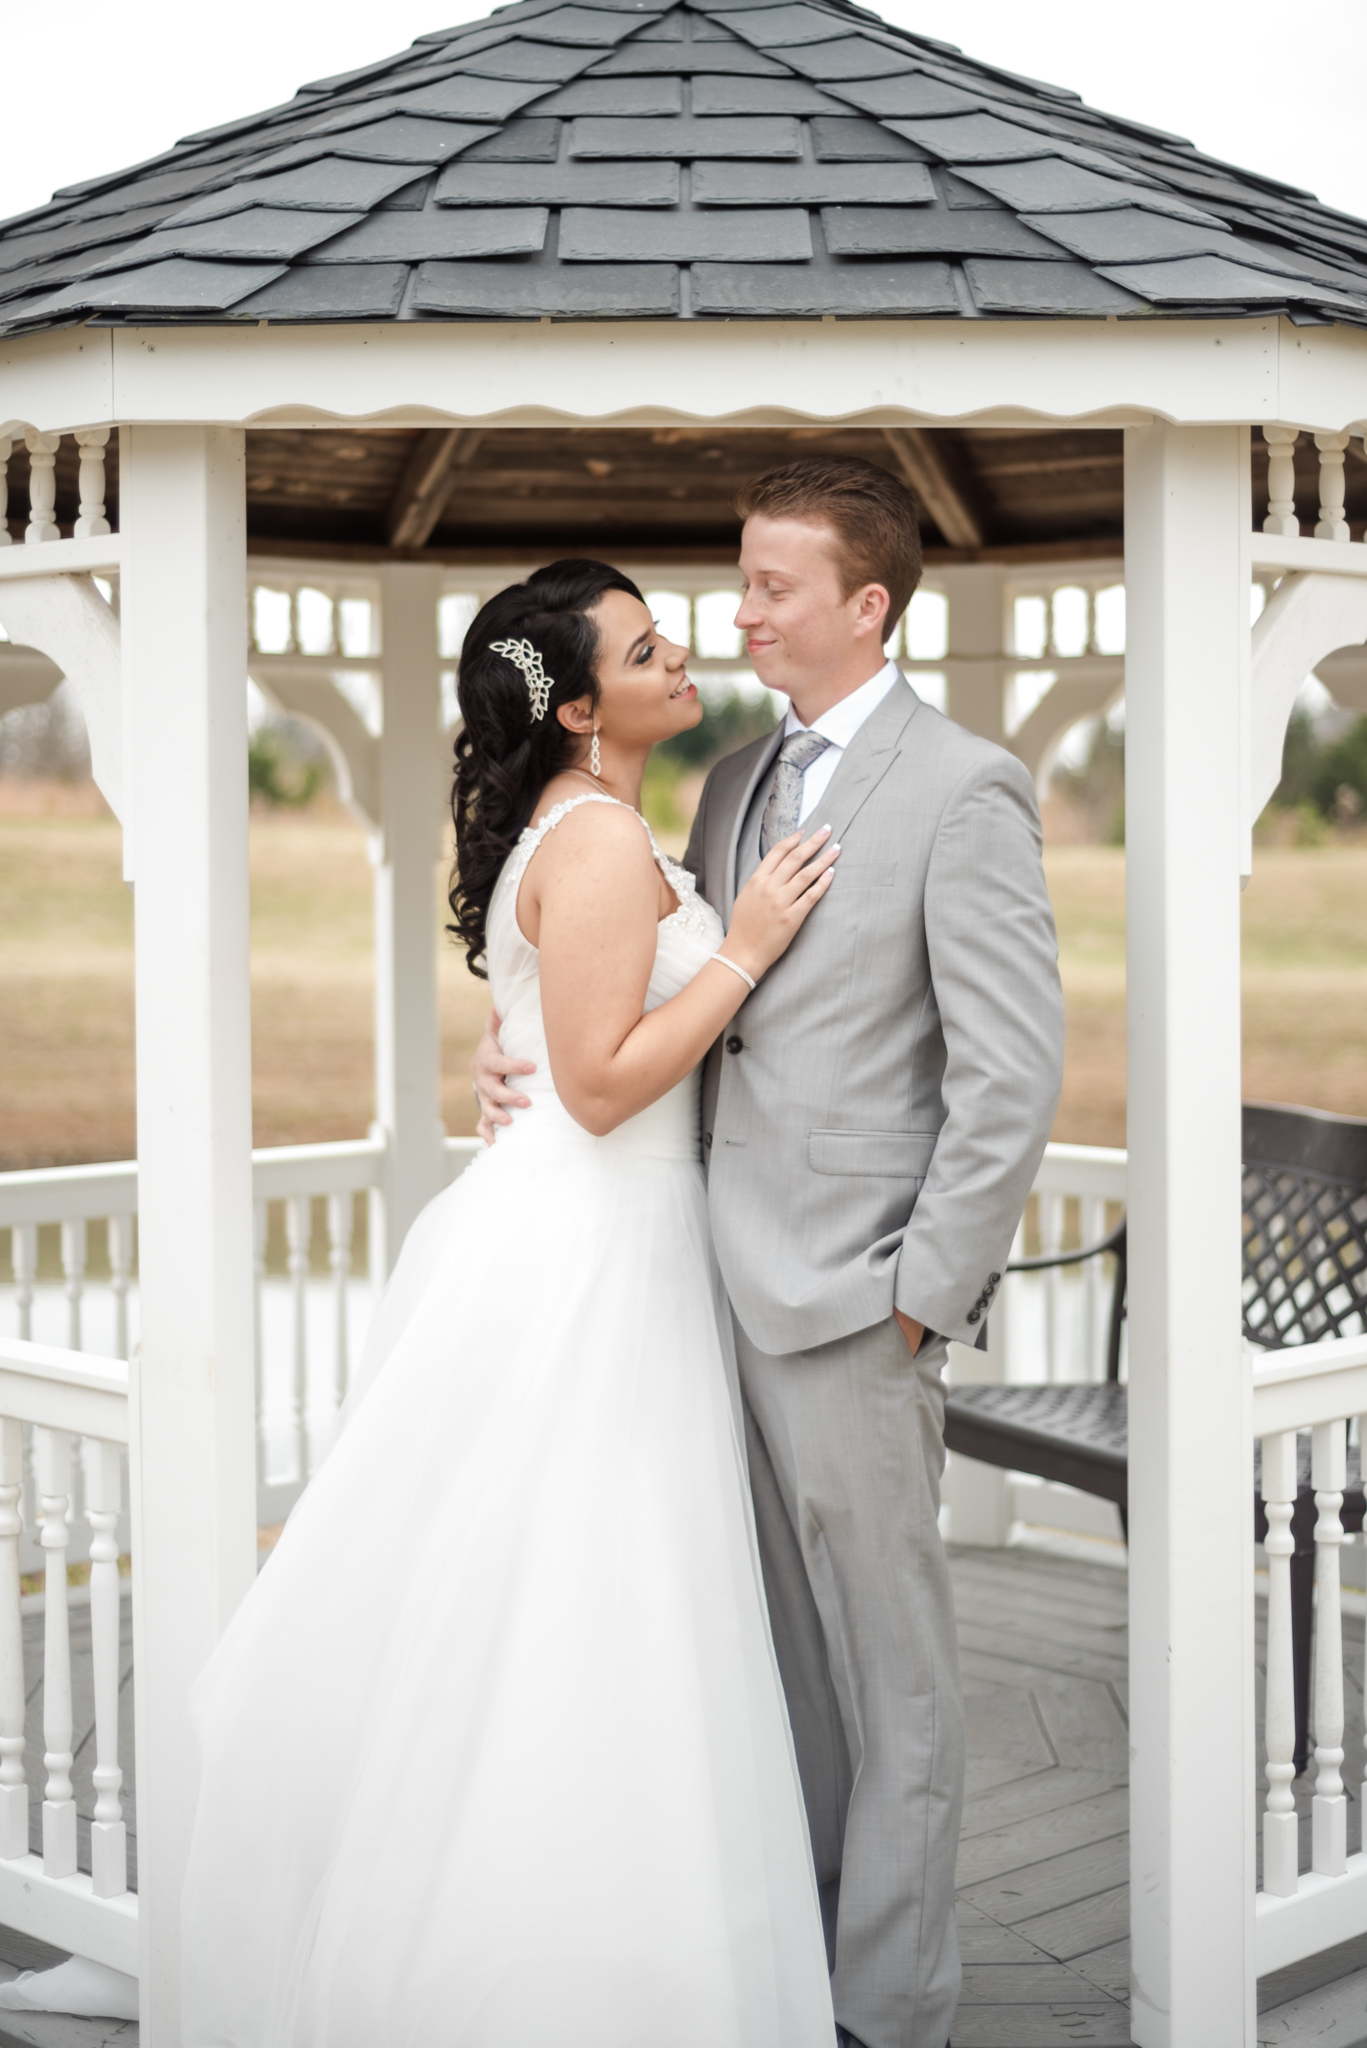 gibsonville-wedding-photography-008.jpg